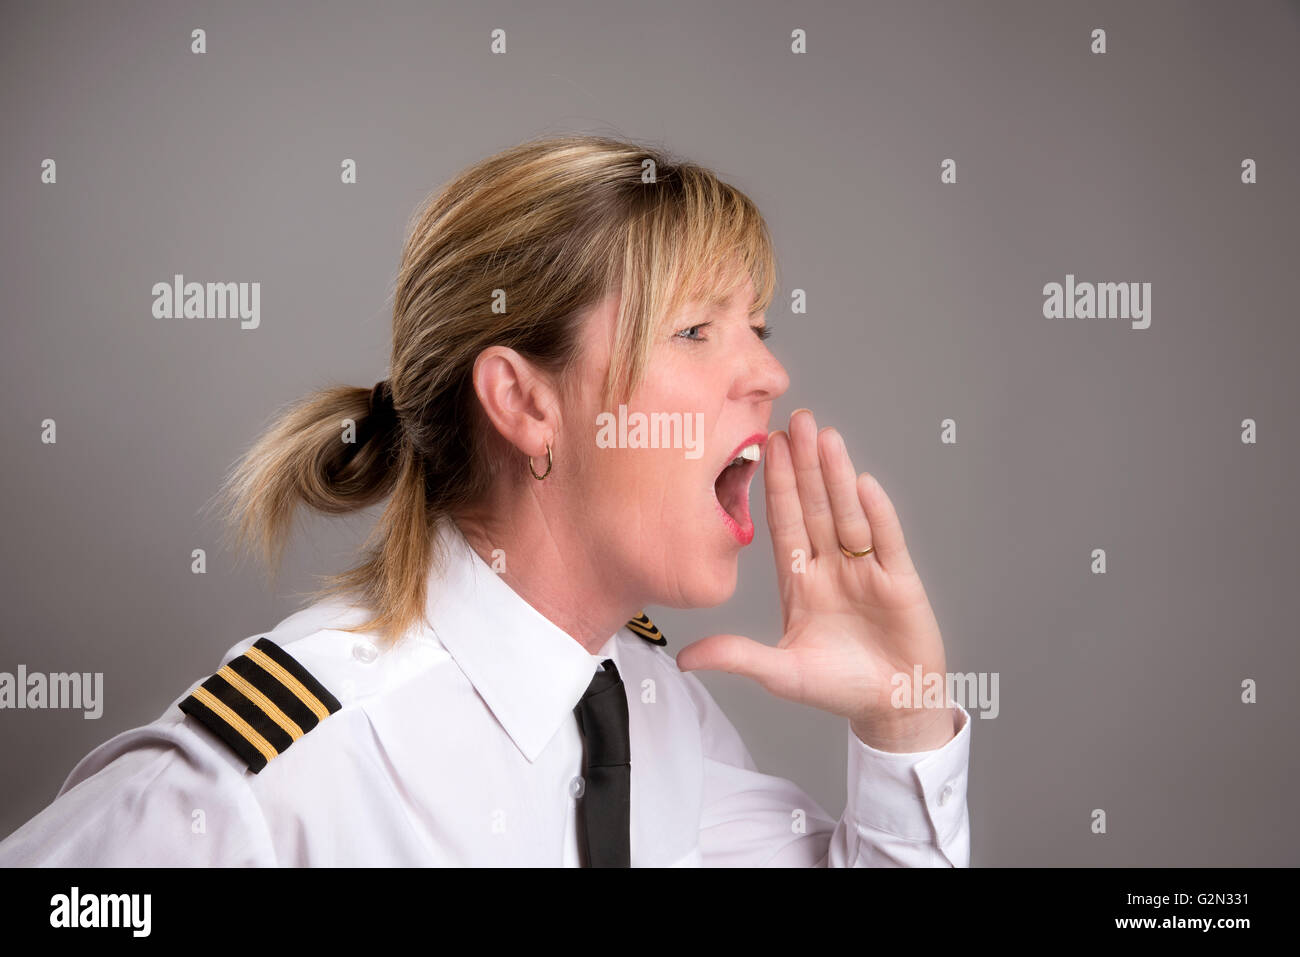 OFFICER SHOUTS AN ORDER  Portrait of a female uniformed officer shouting and order - Stock Image